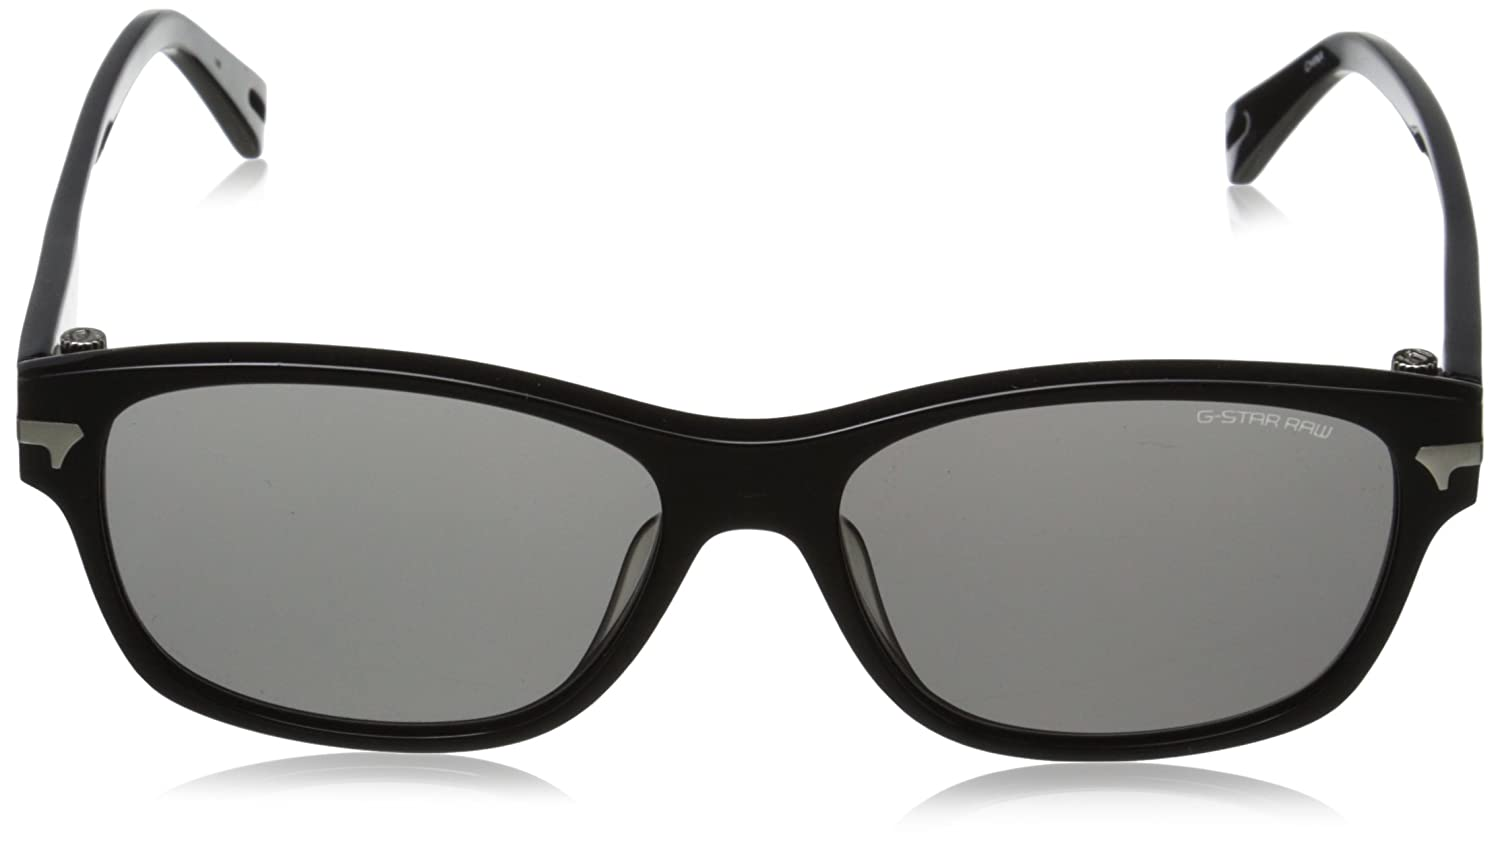 G-Star - Gafas de sol Rectangulares GS605S Thin Huxley ...